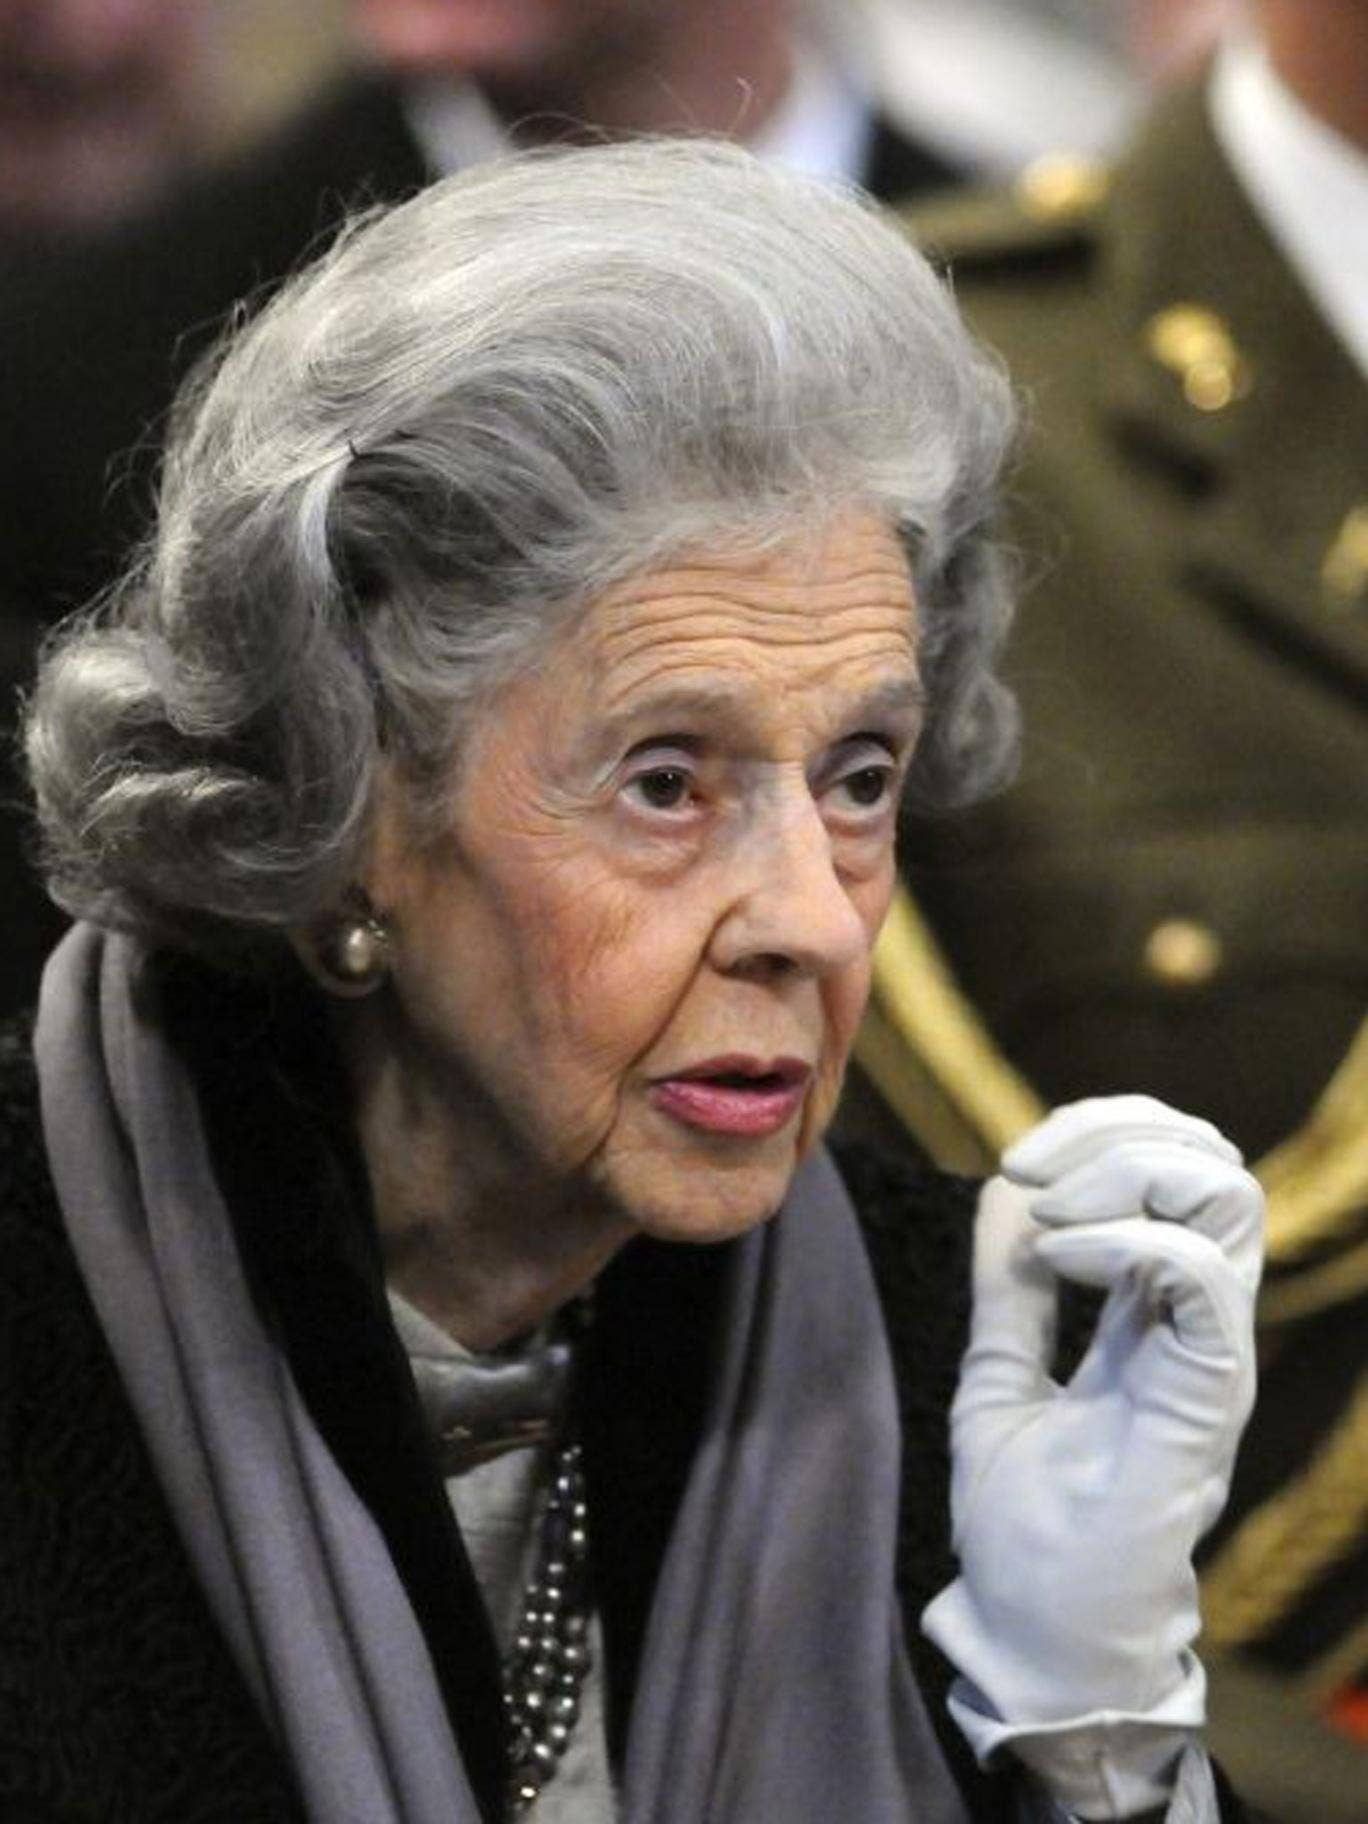 Queen Fabiola had planned to move funds to Spain